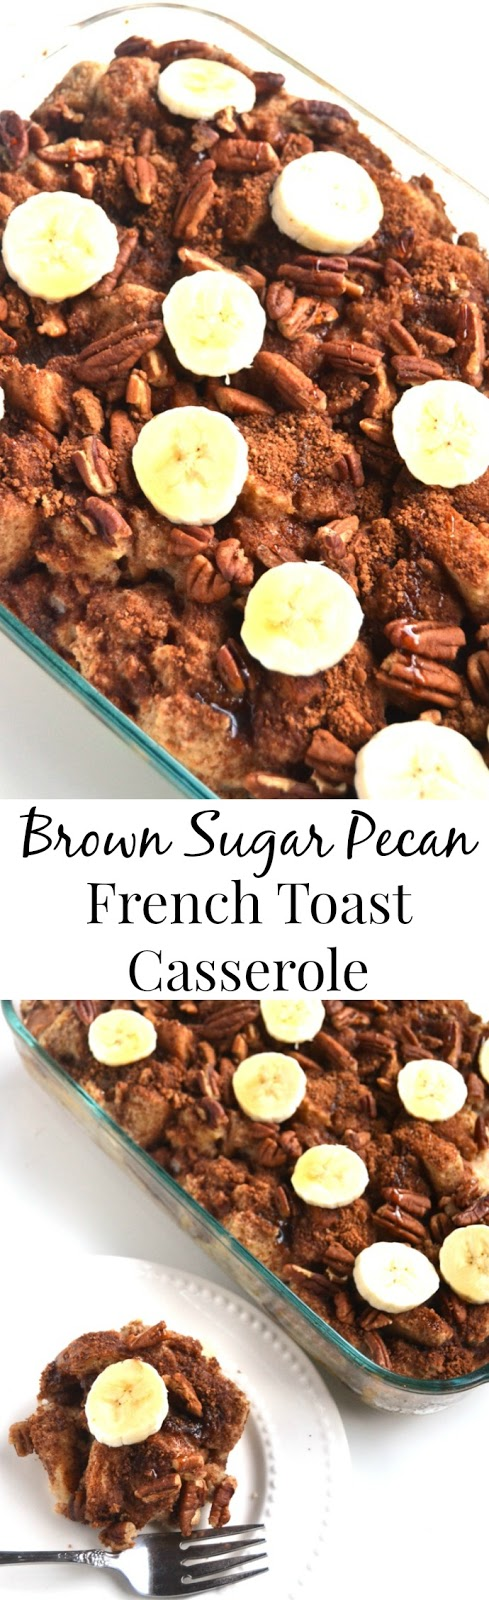 Brown Sugar Pecan French Toast Casserole- an easy make-ahead breakfast with brown sugar, pecans and bananas that the whole family will love! www.nutritionistreviews.com